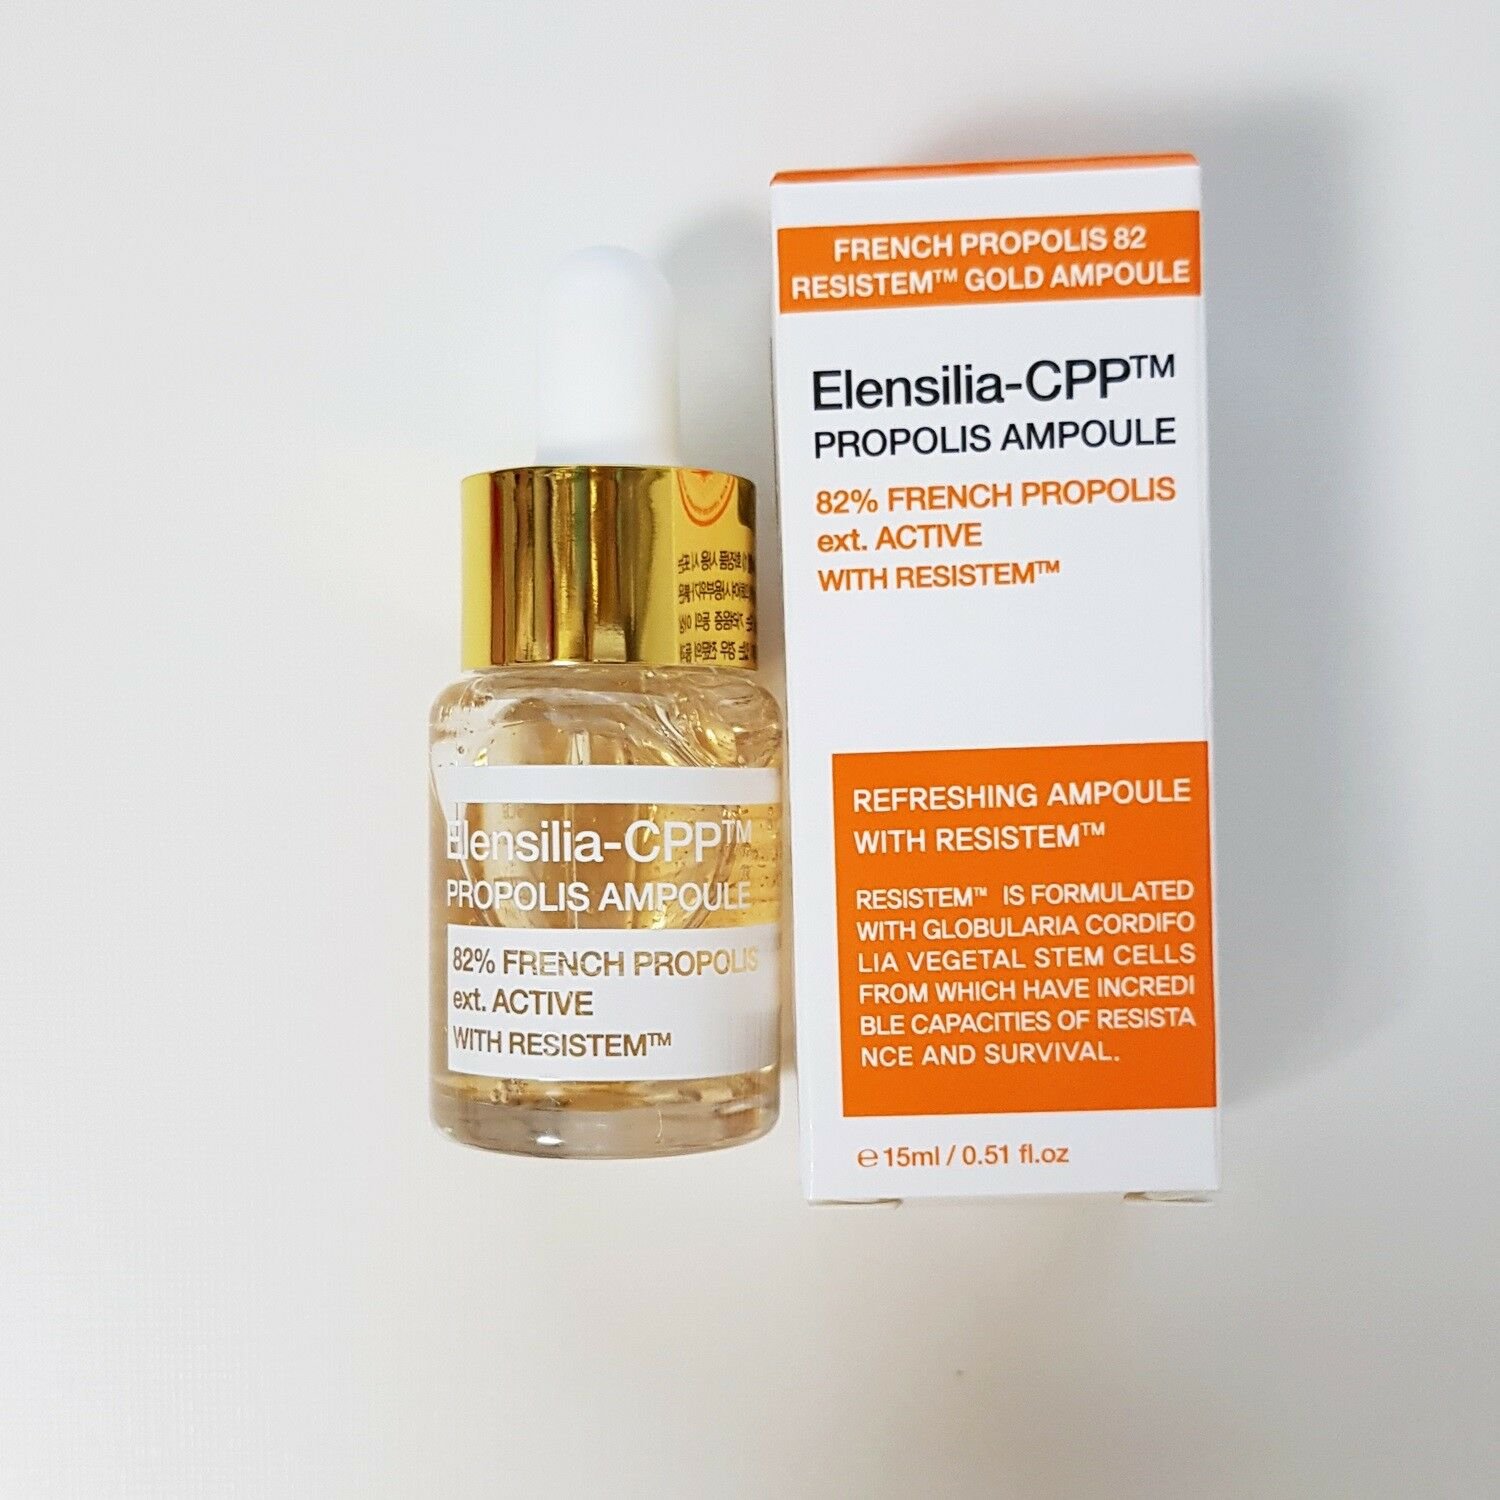 Elensilia Cpp French Propolis 82 Resistem Gold Ampoule 051oz Me Lia Original 30ml 1 Of 2only 5 Available